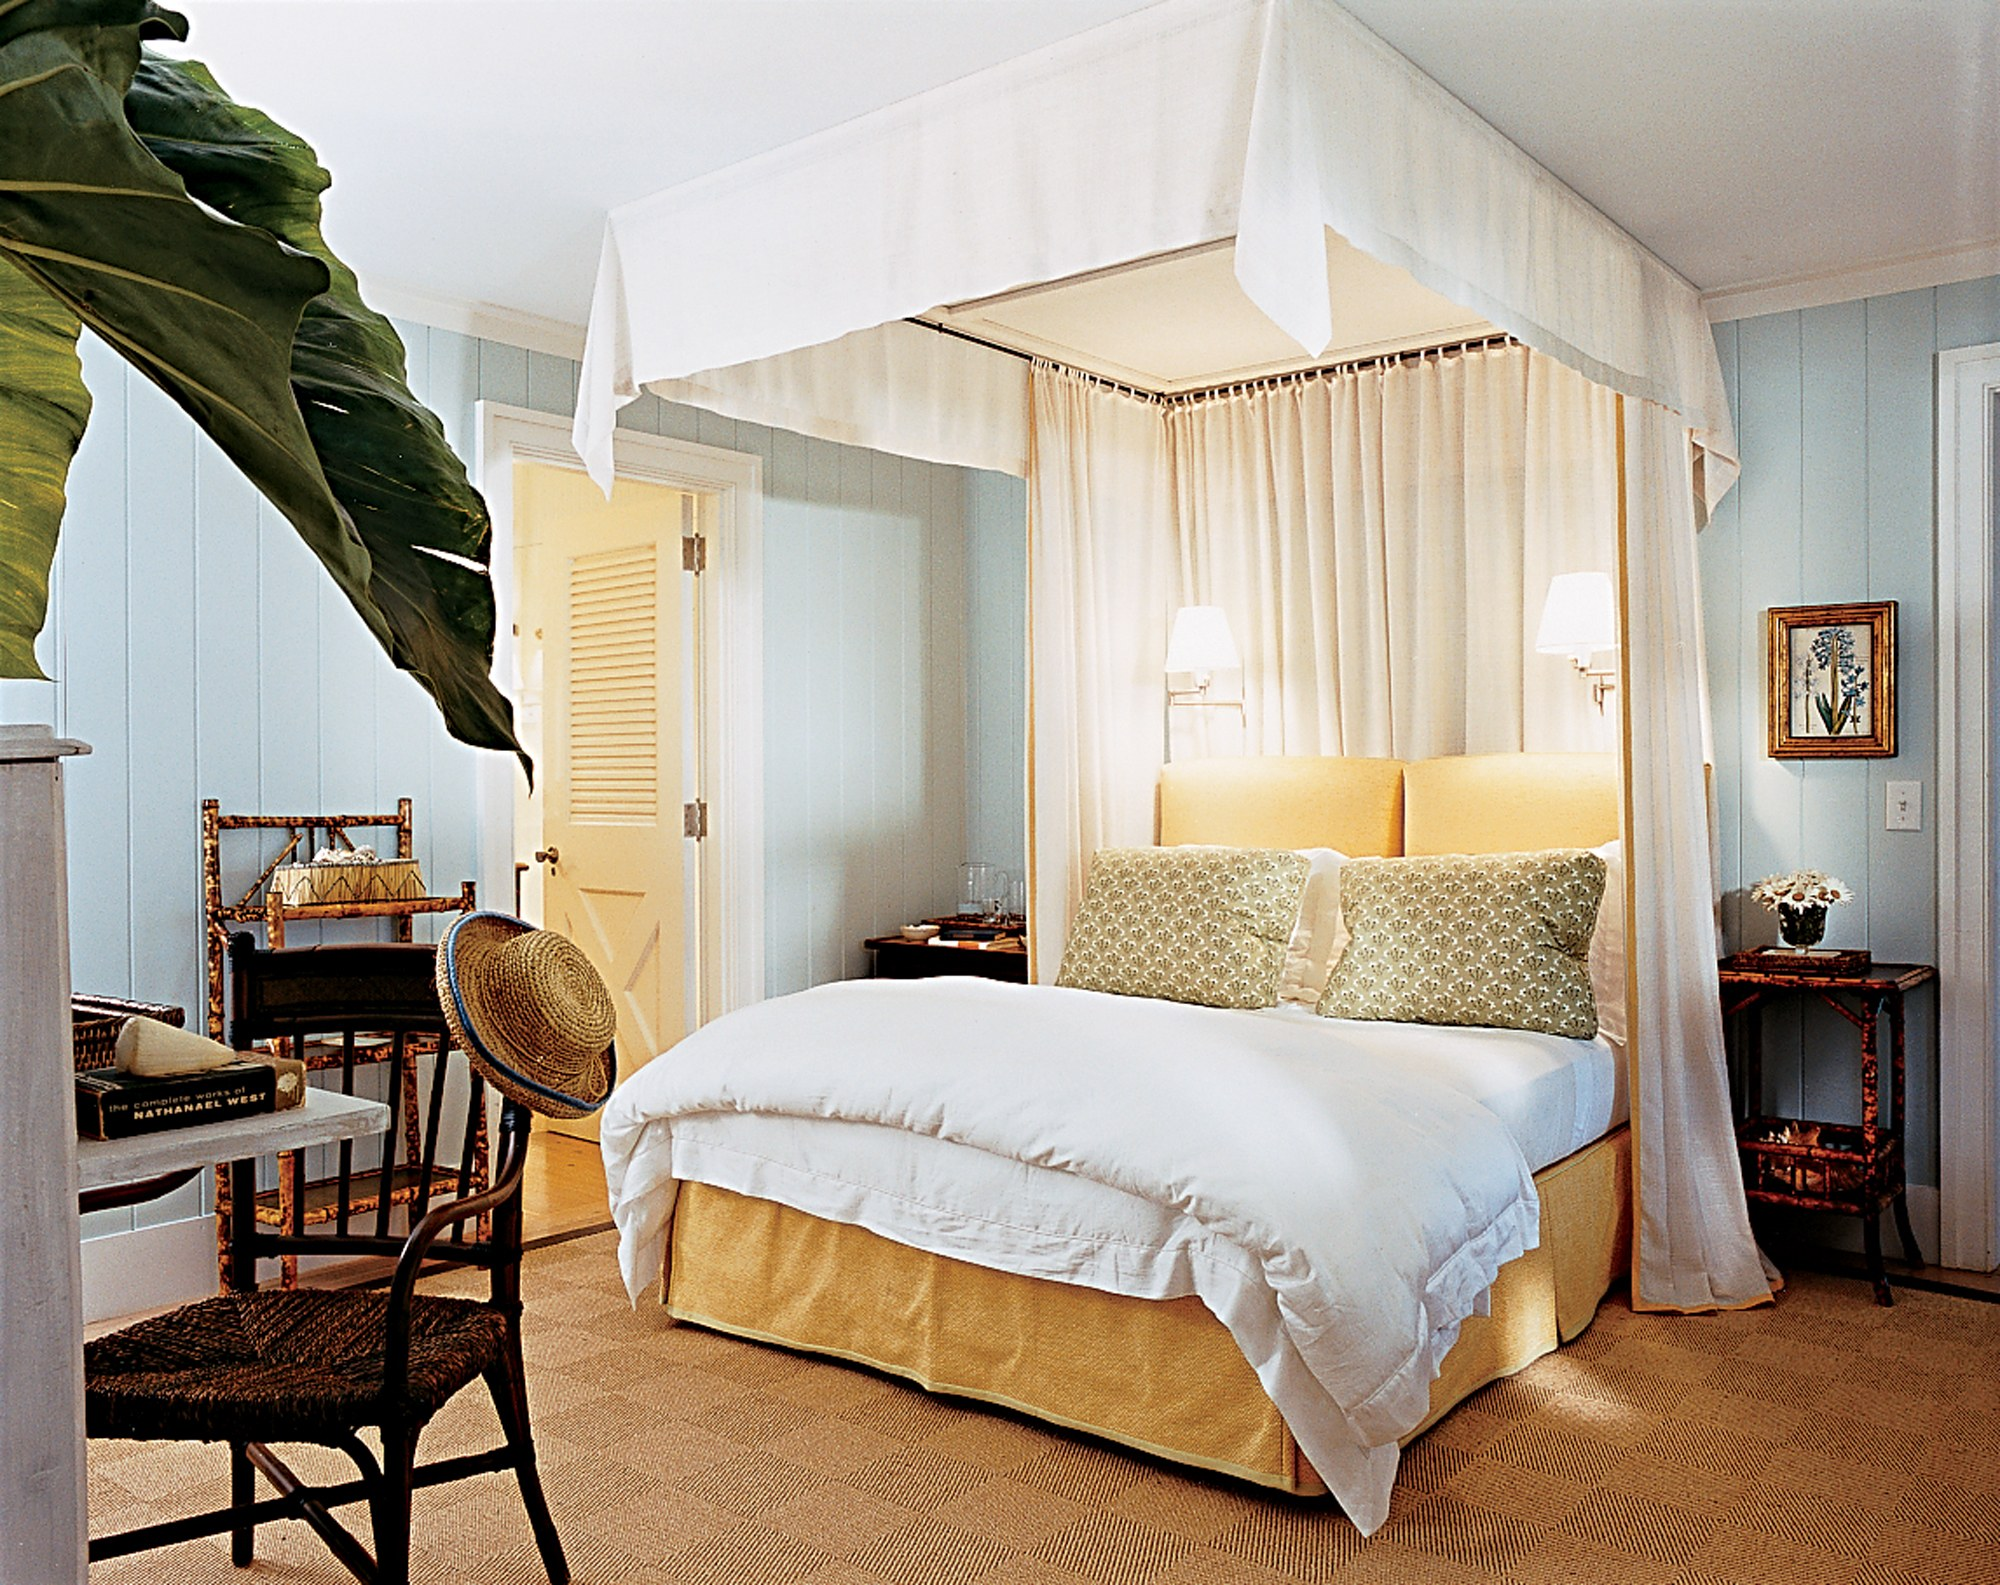 The Most Beautiful Bedroom Design Homifind